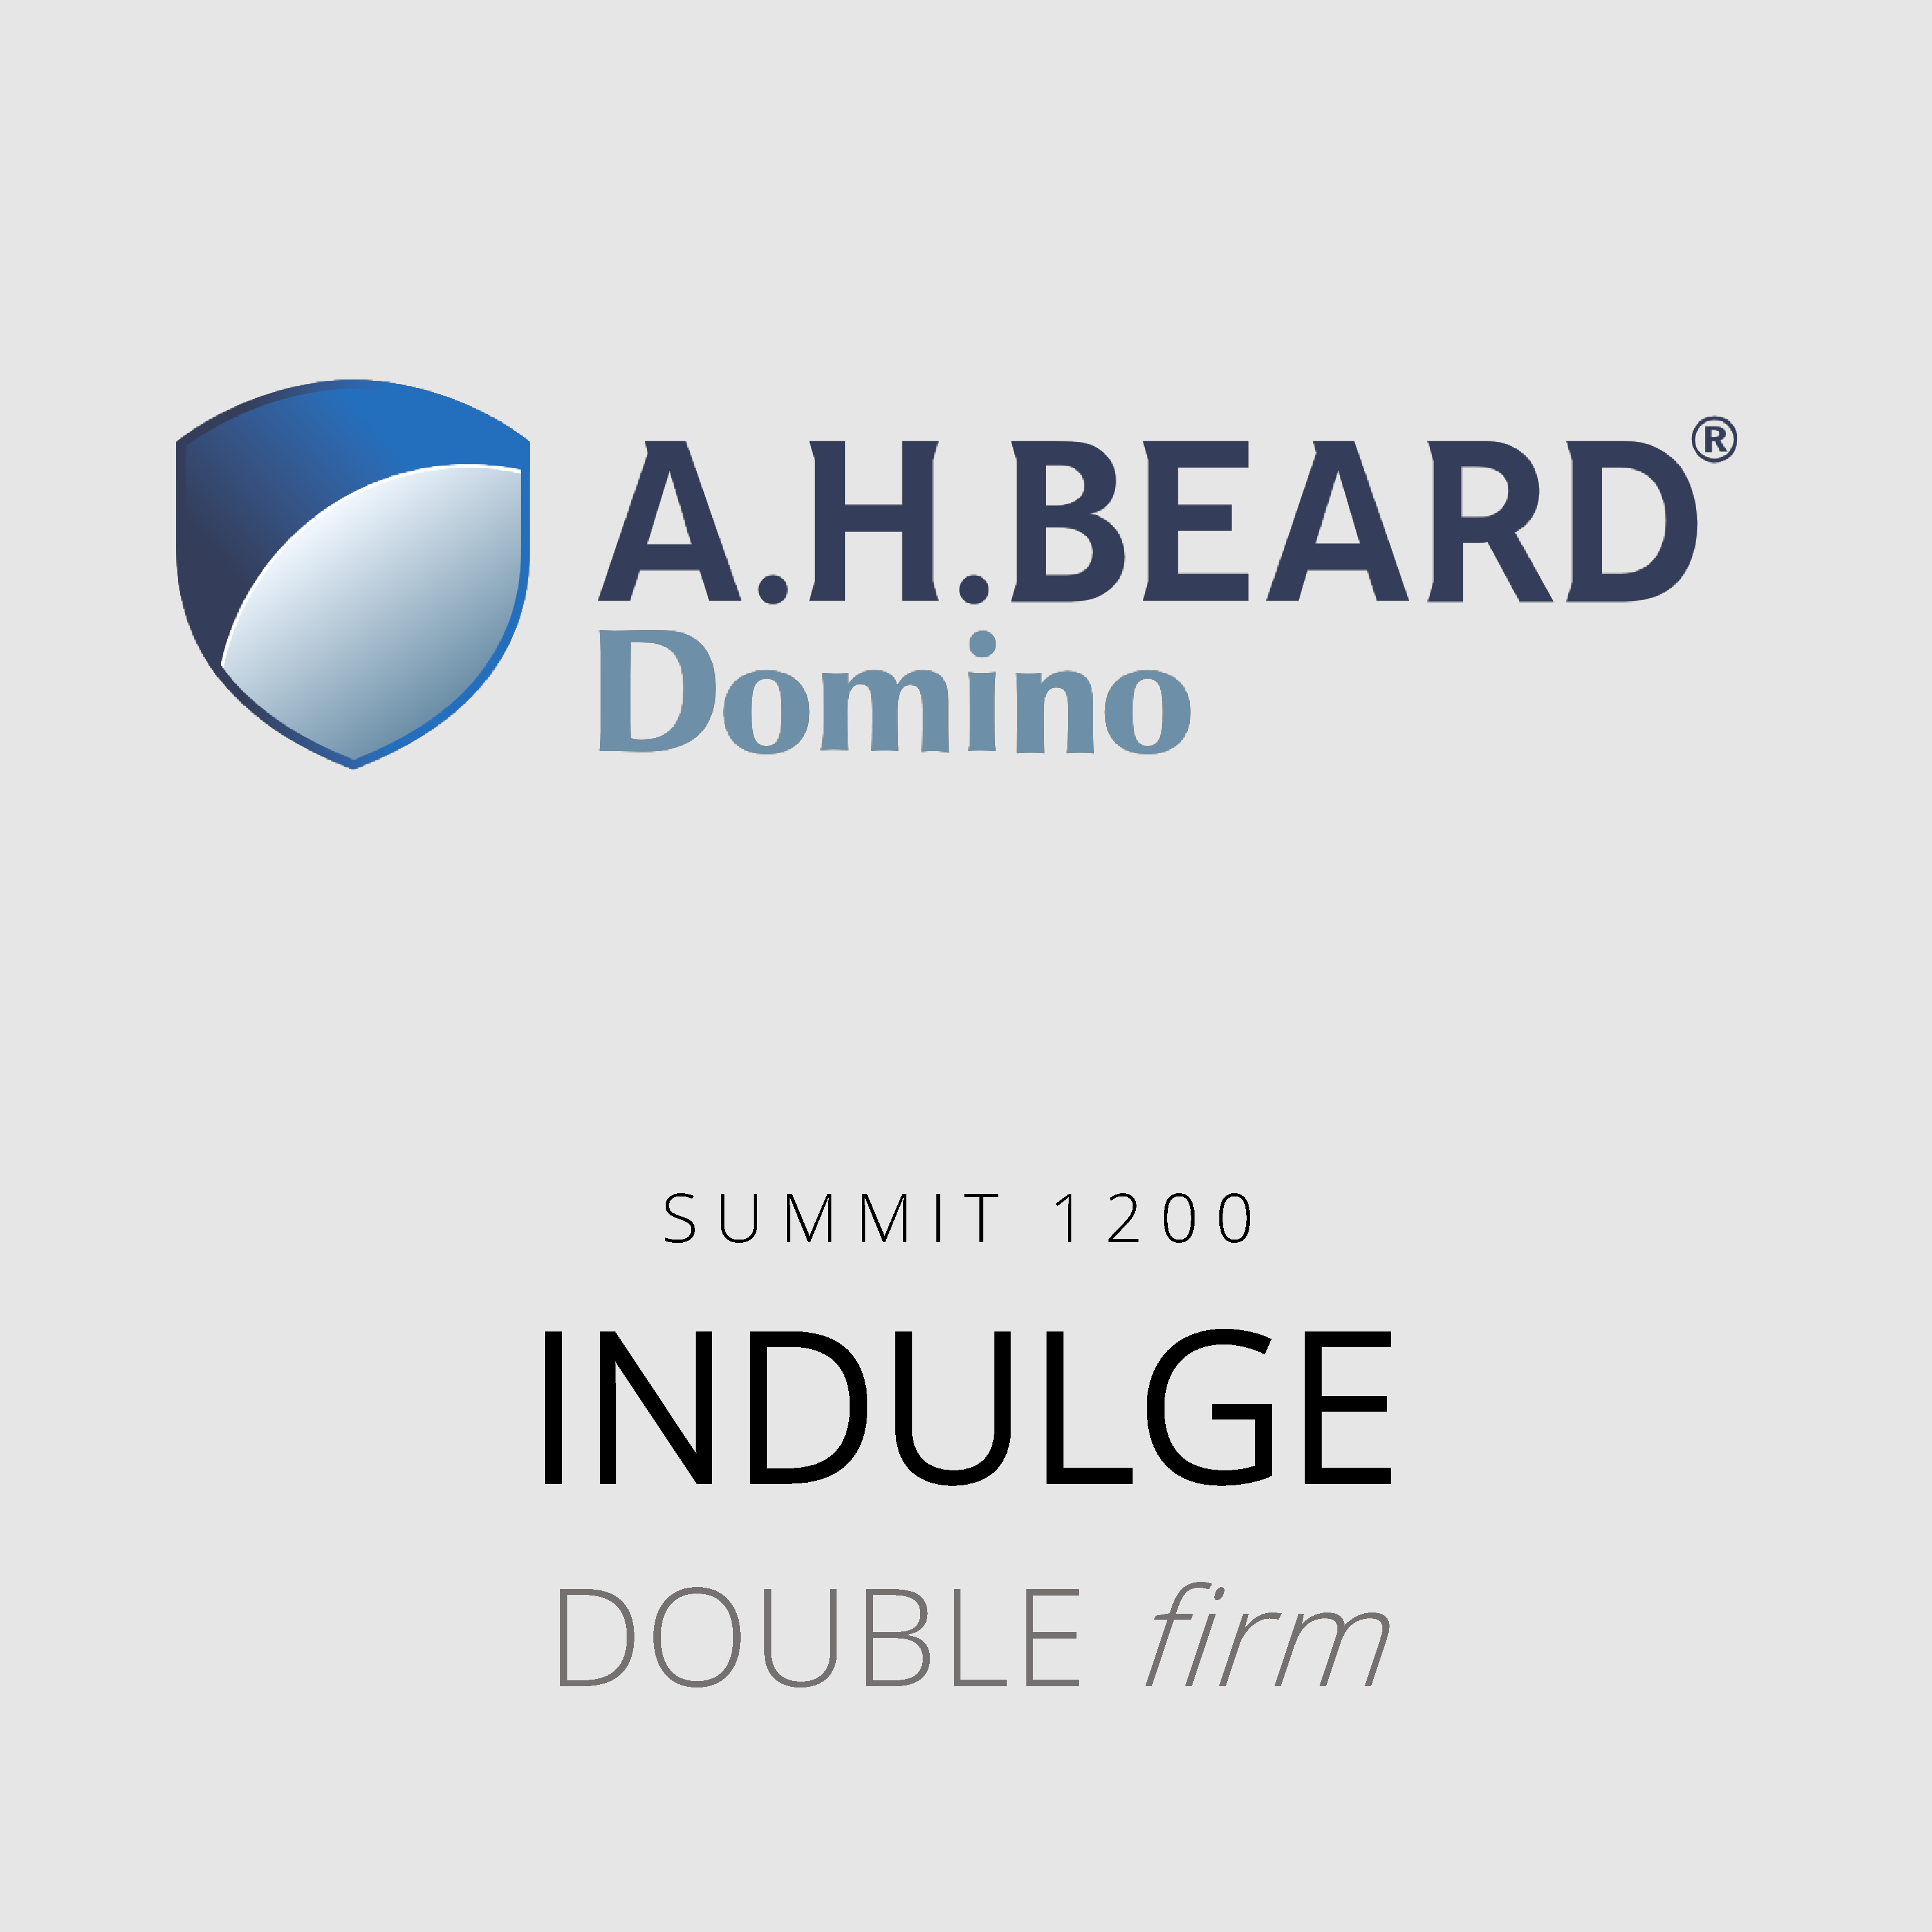 AH Beard Domino – Indulge – Summit 1200 – Double Firm Mattress